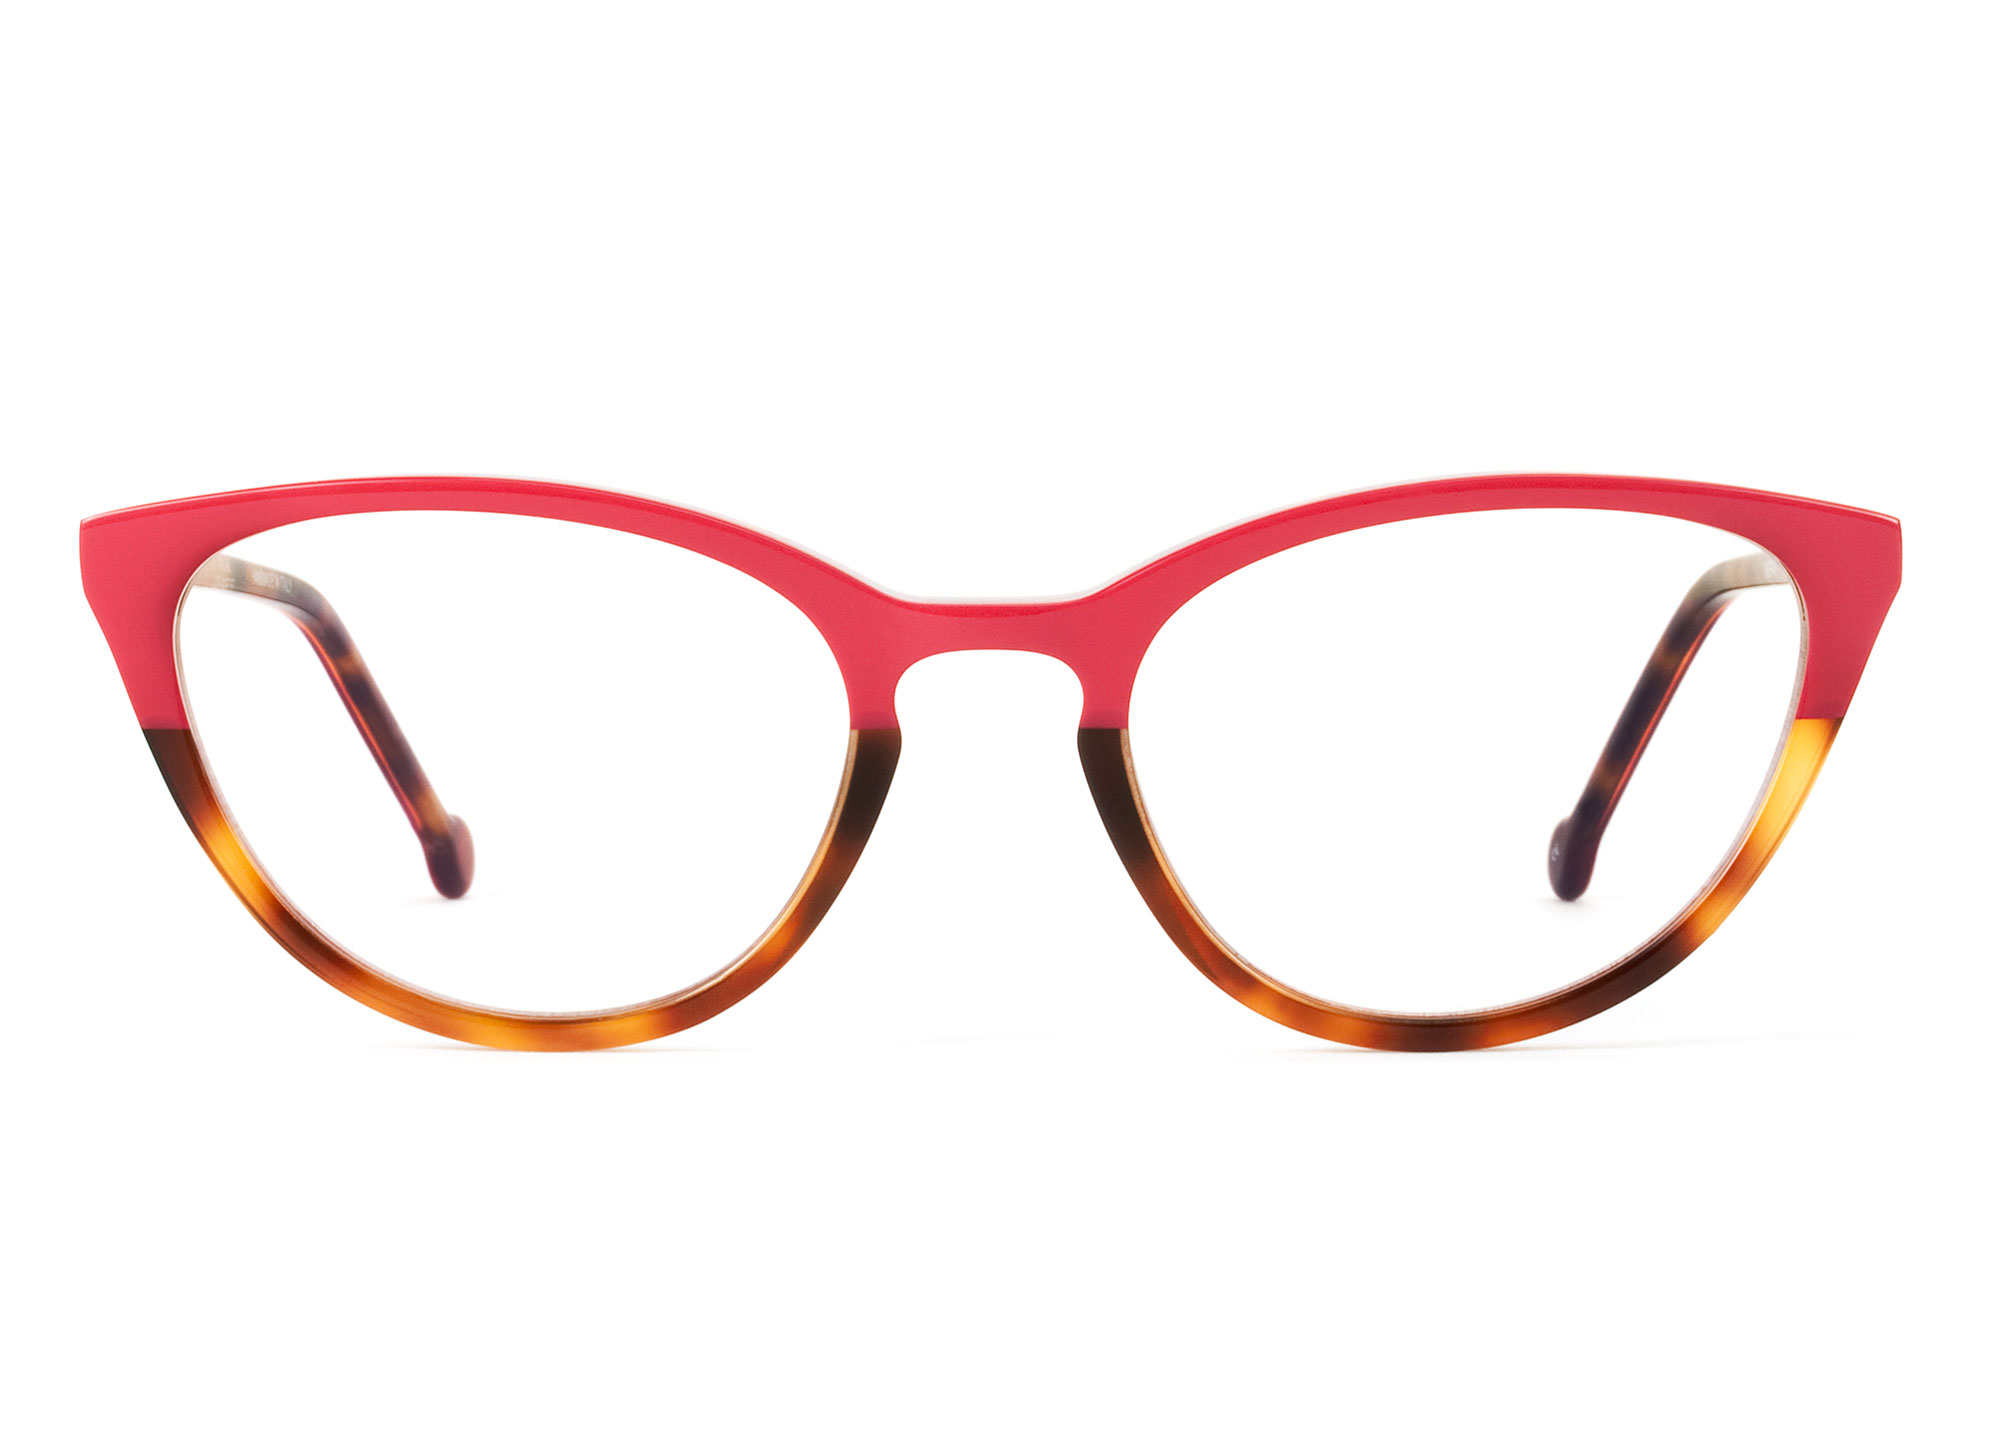 e5652513c87 The glasses we make are suggestive sparks that fly from our imagination. It  is you who completes these thoughts and brings the dreams of l.a.Eyeworks  into ...